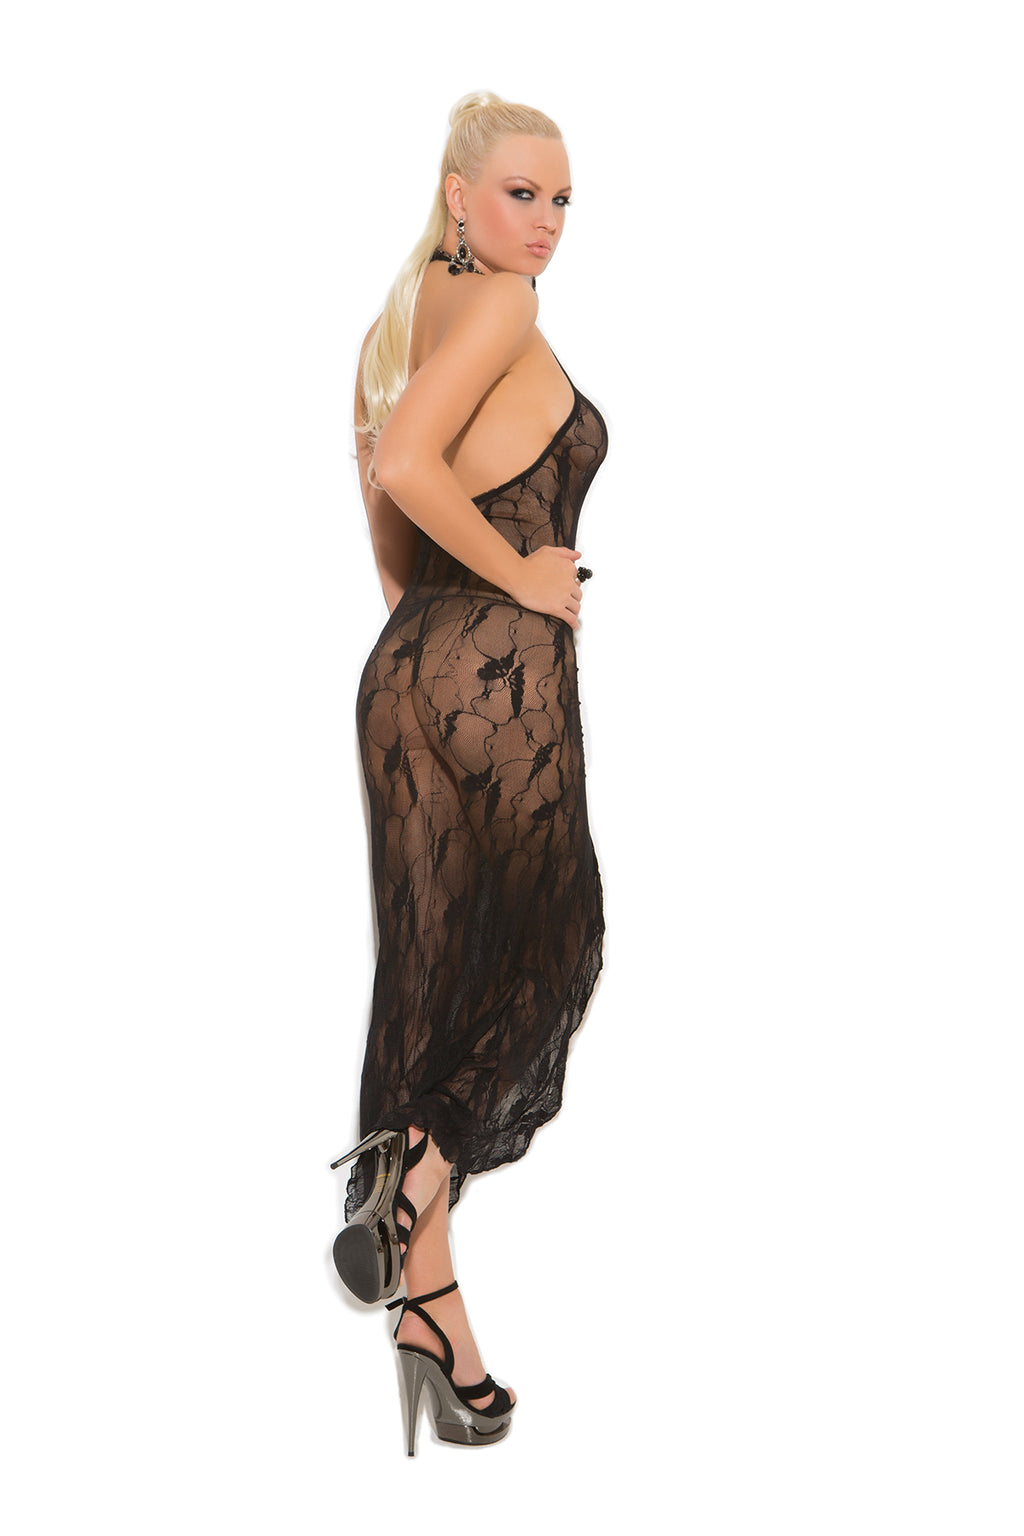 Elegant Moments 1442 Black Lace Butterfly Dress